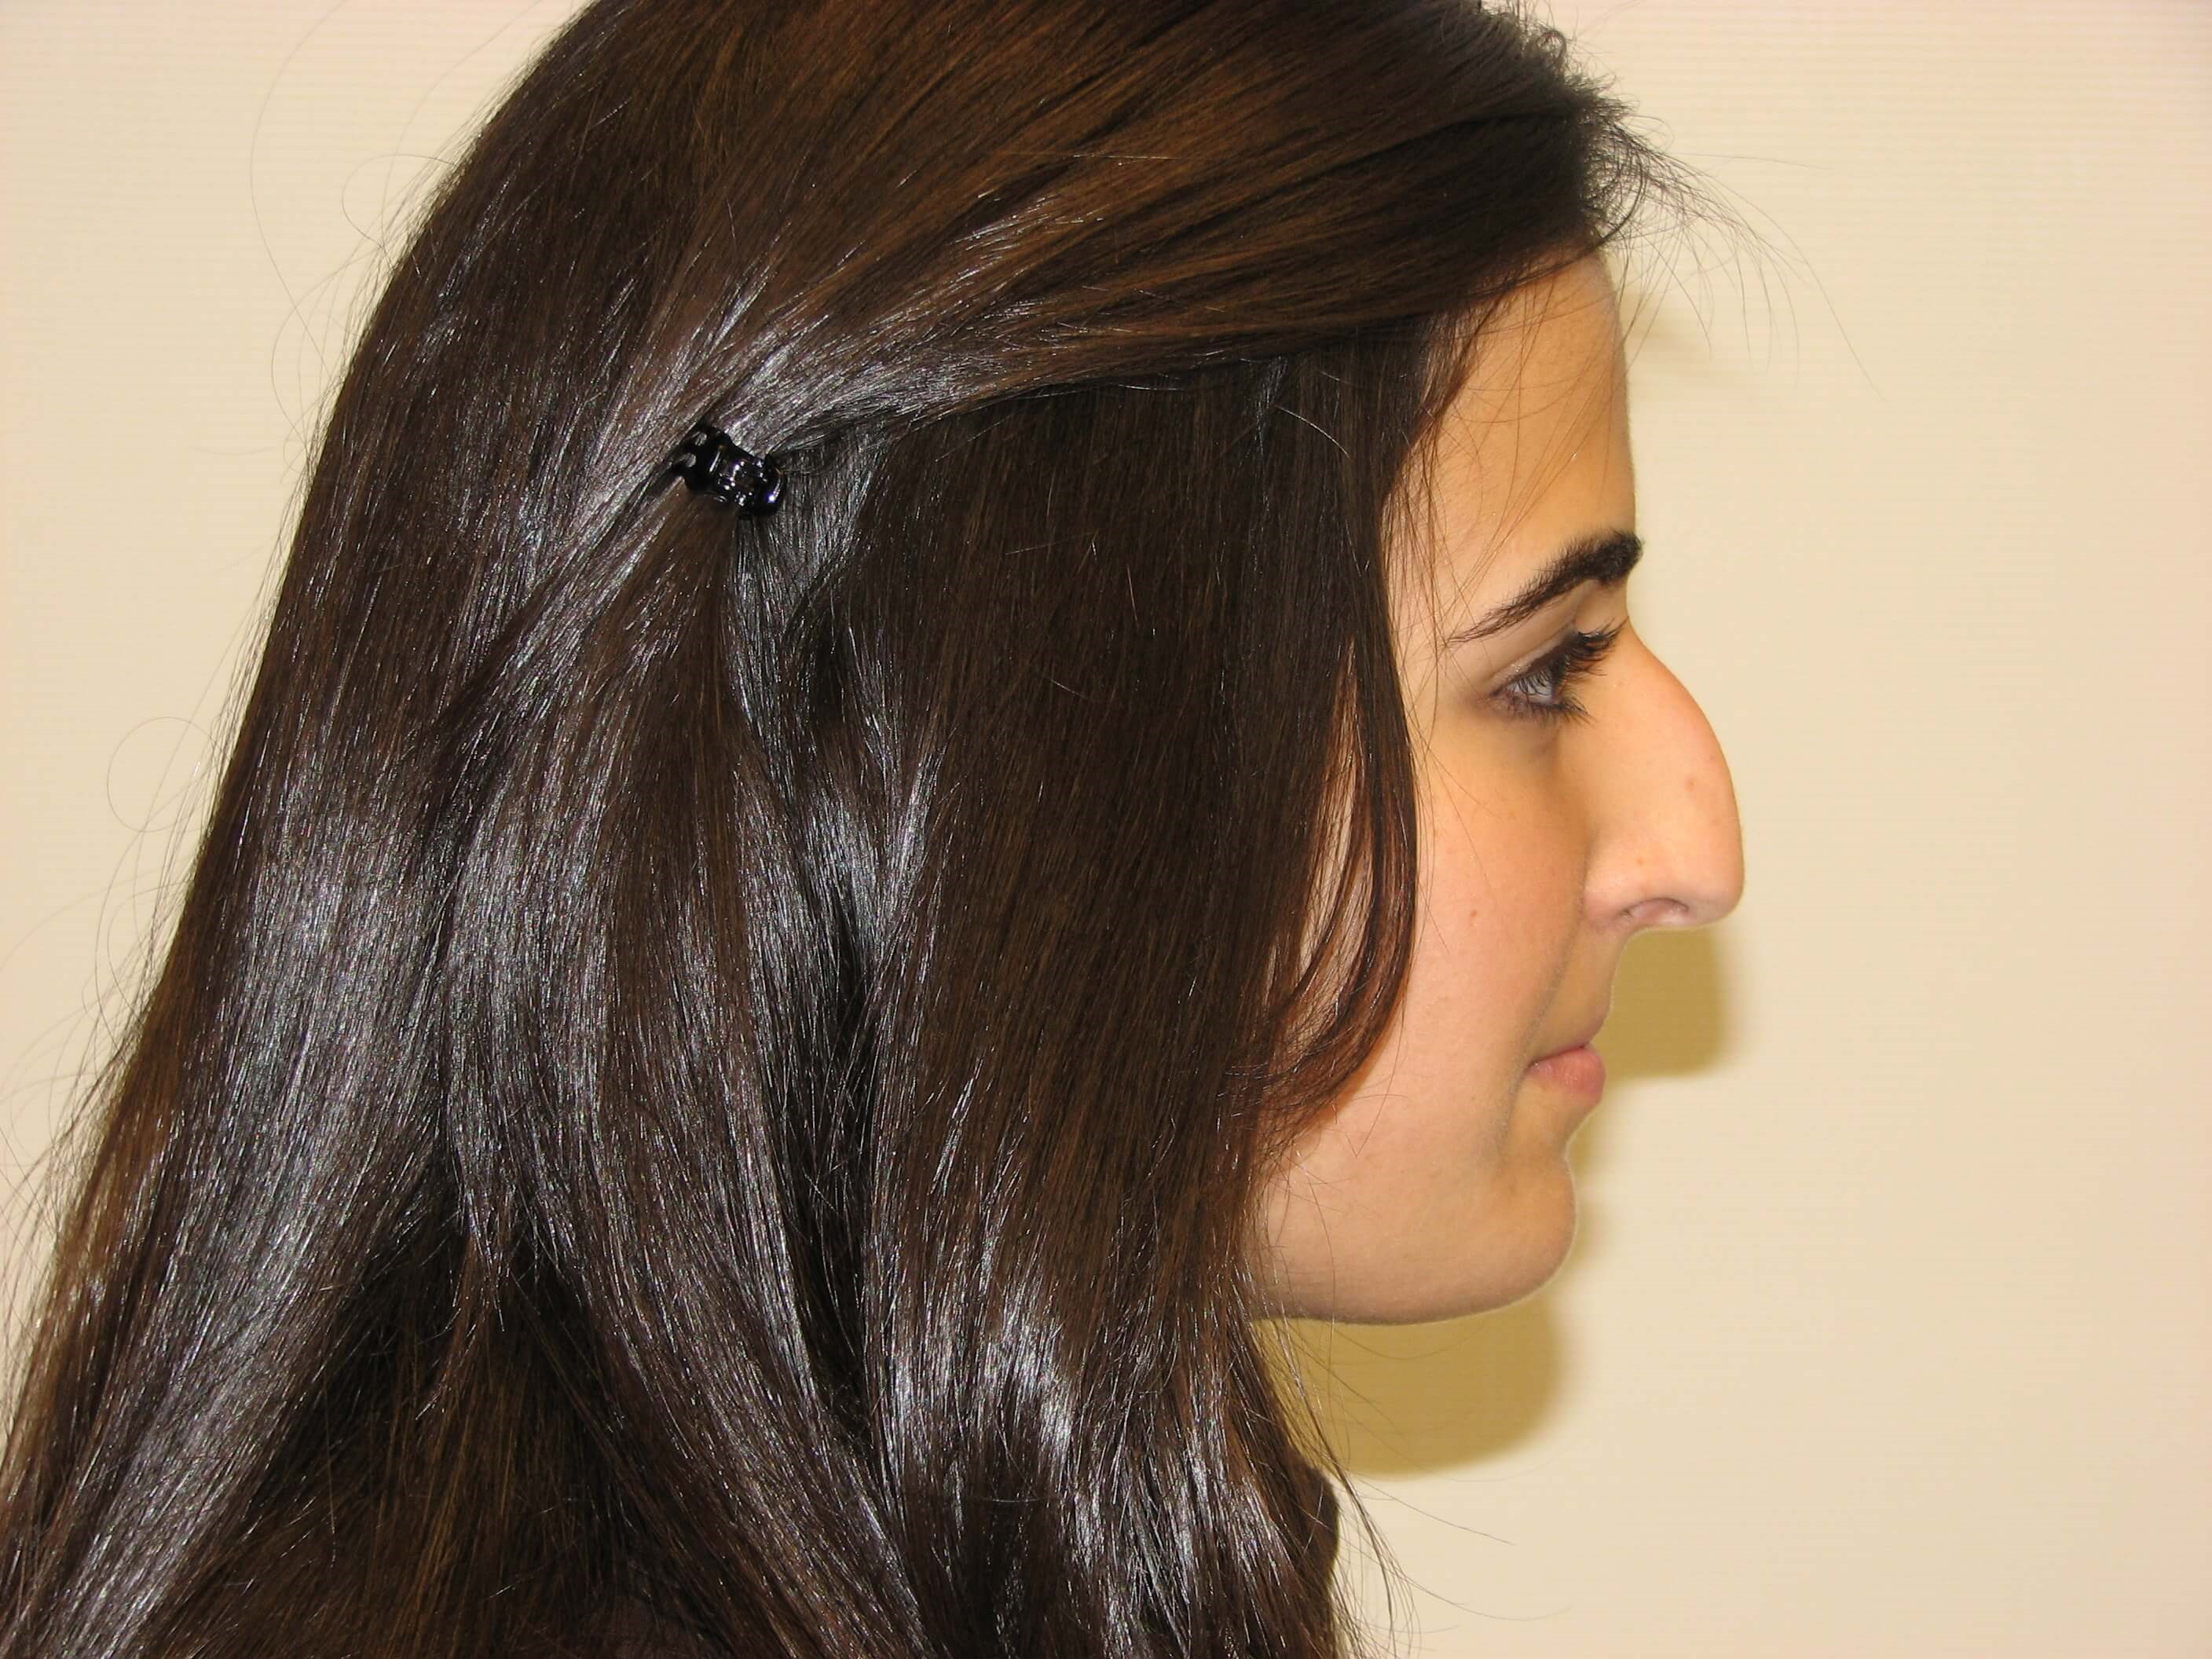 Rhinoplasty for bump in nose Before